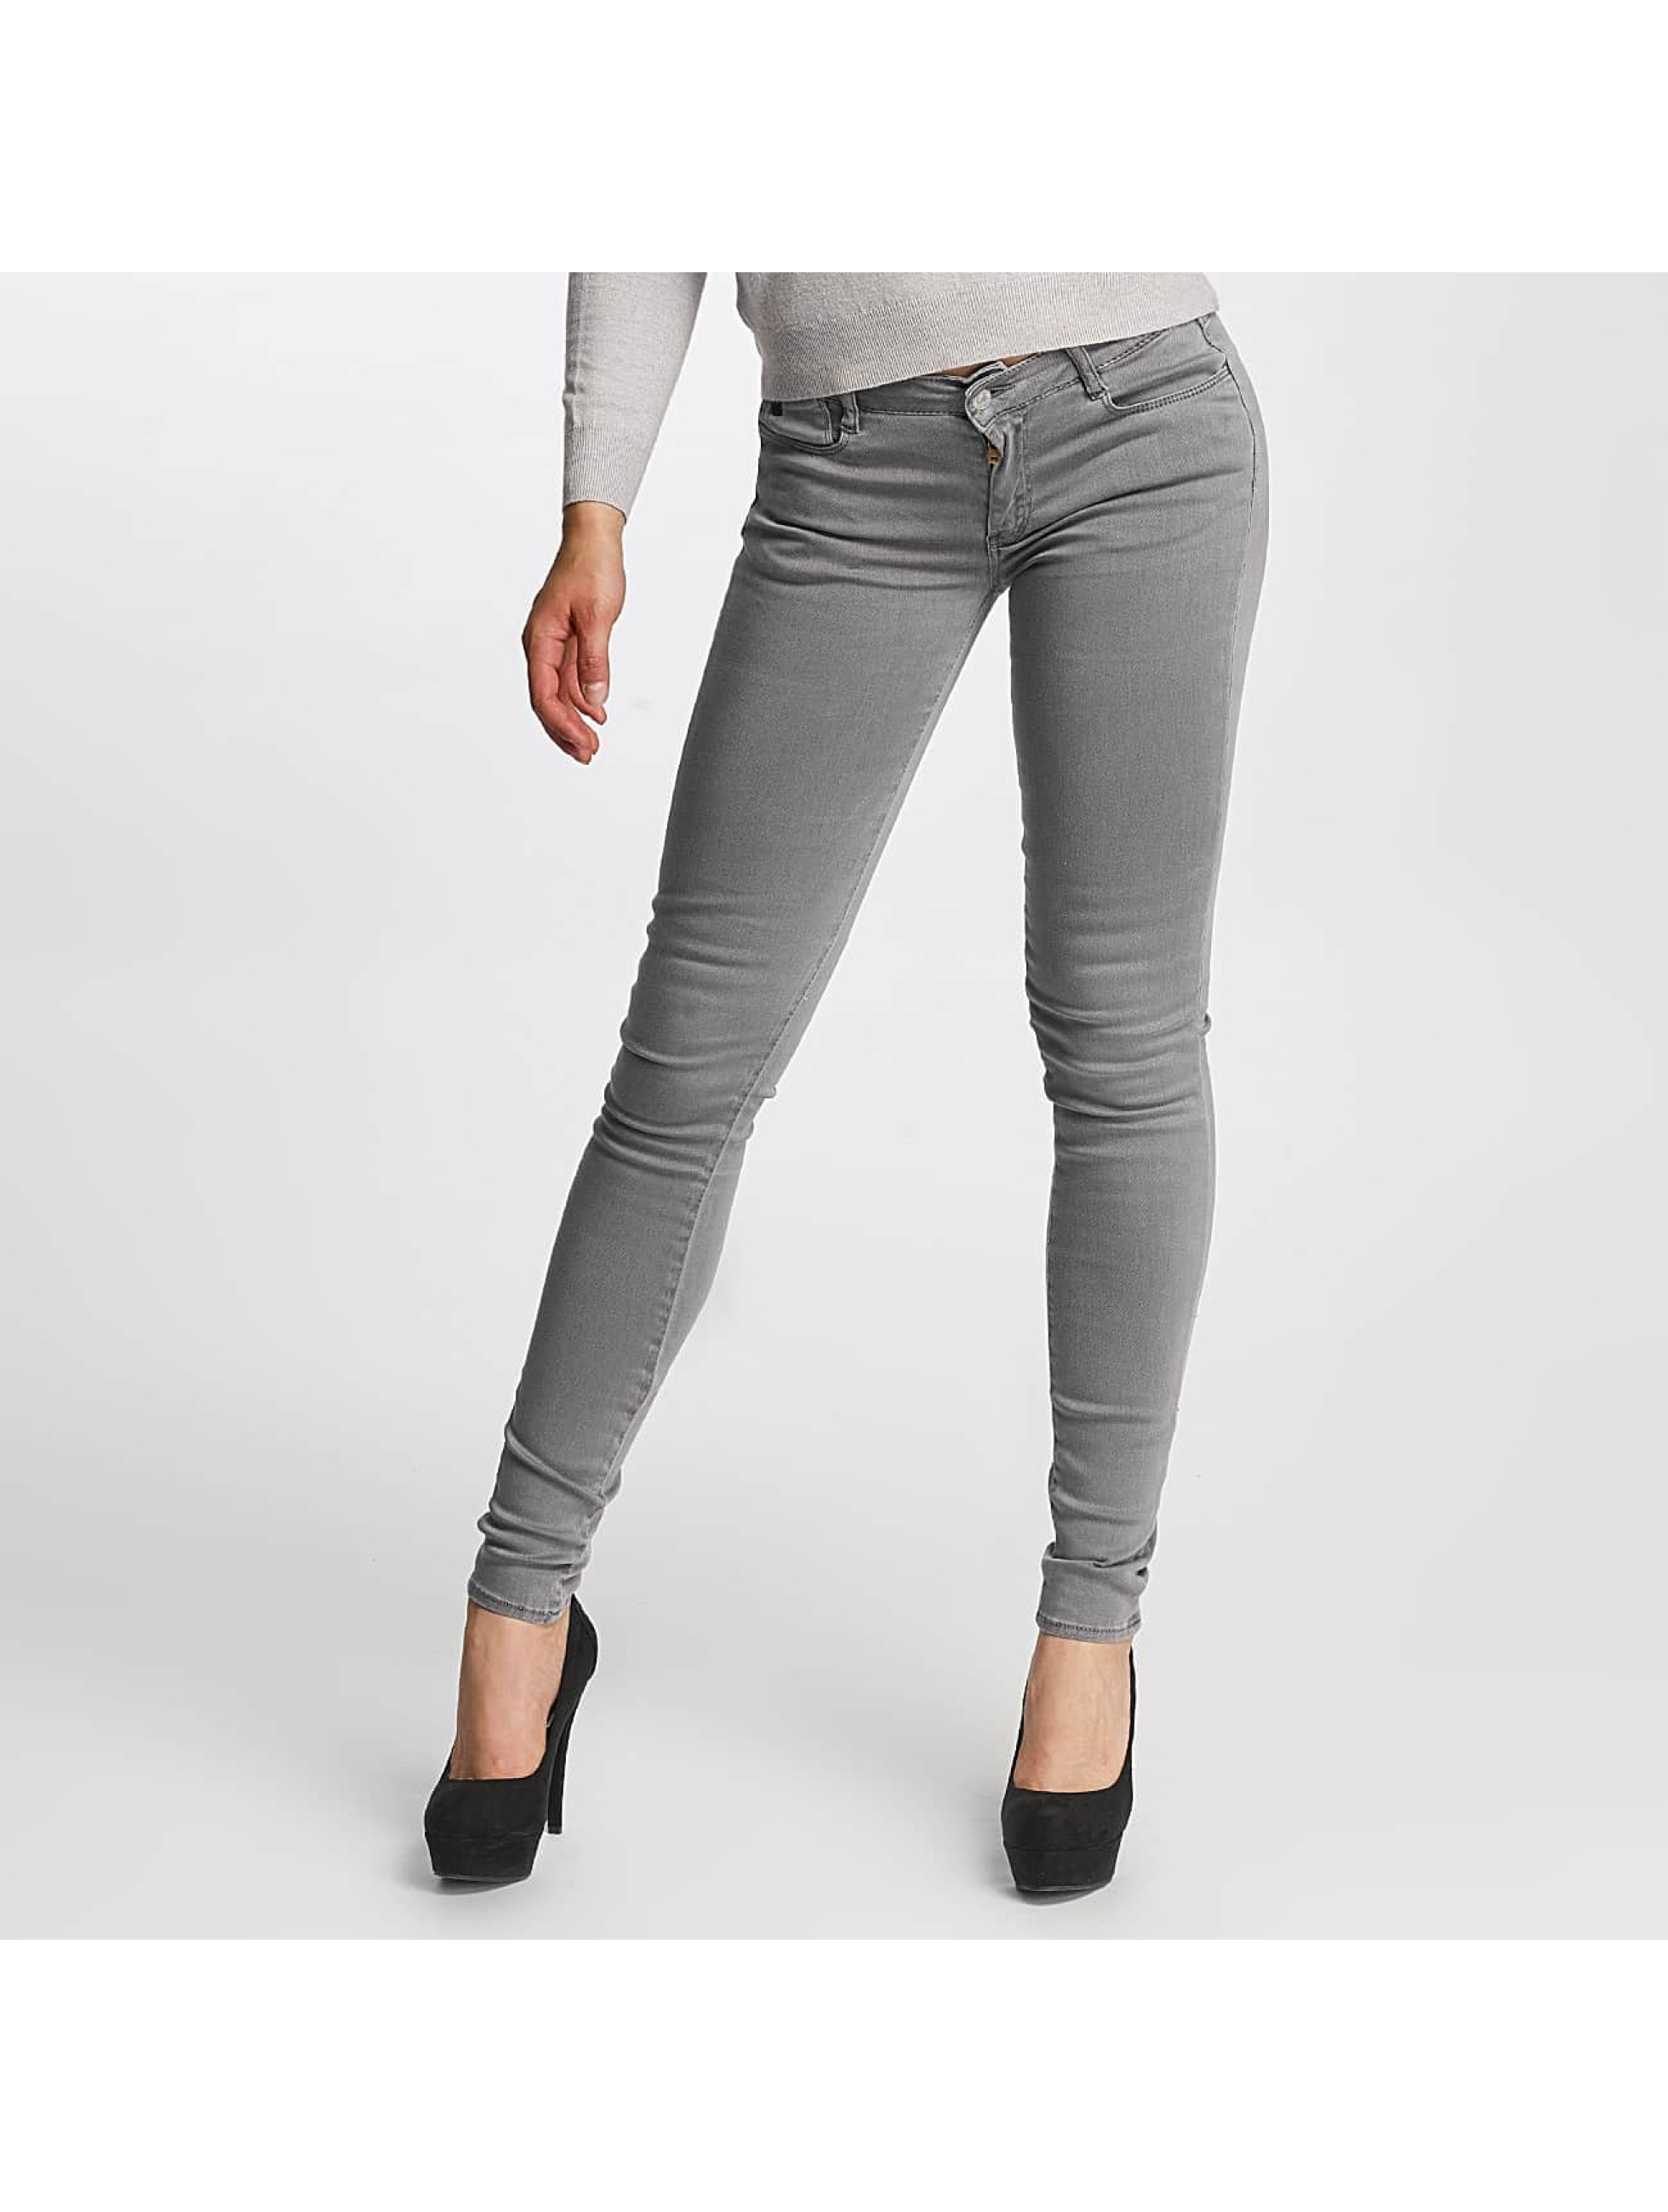 Le Temps Des Cerises Slim Fit Jeans Ultrapower grau